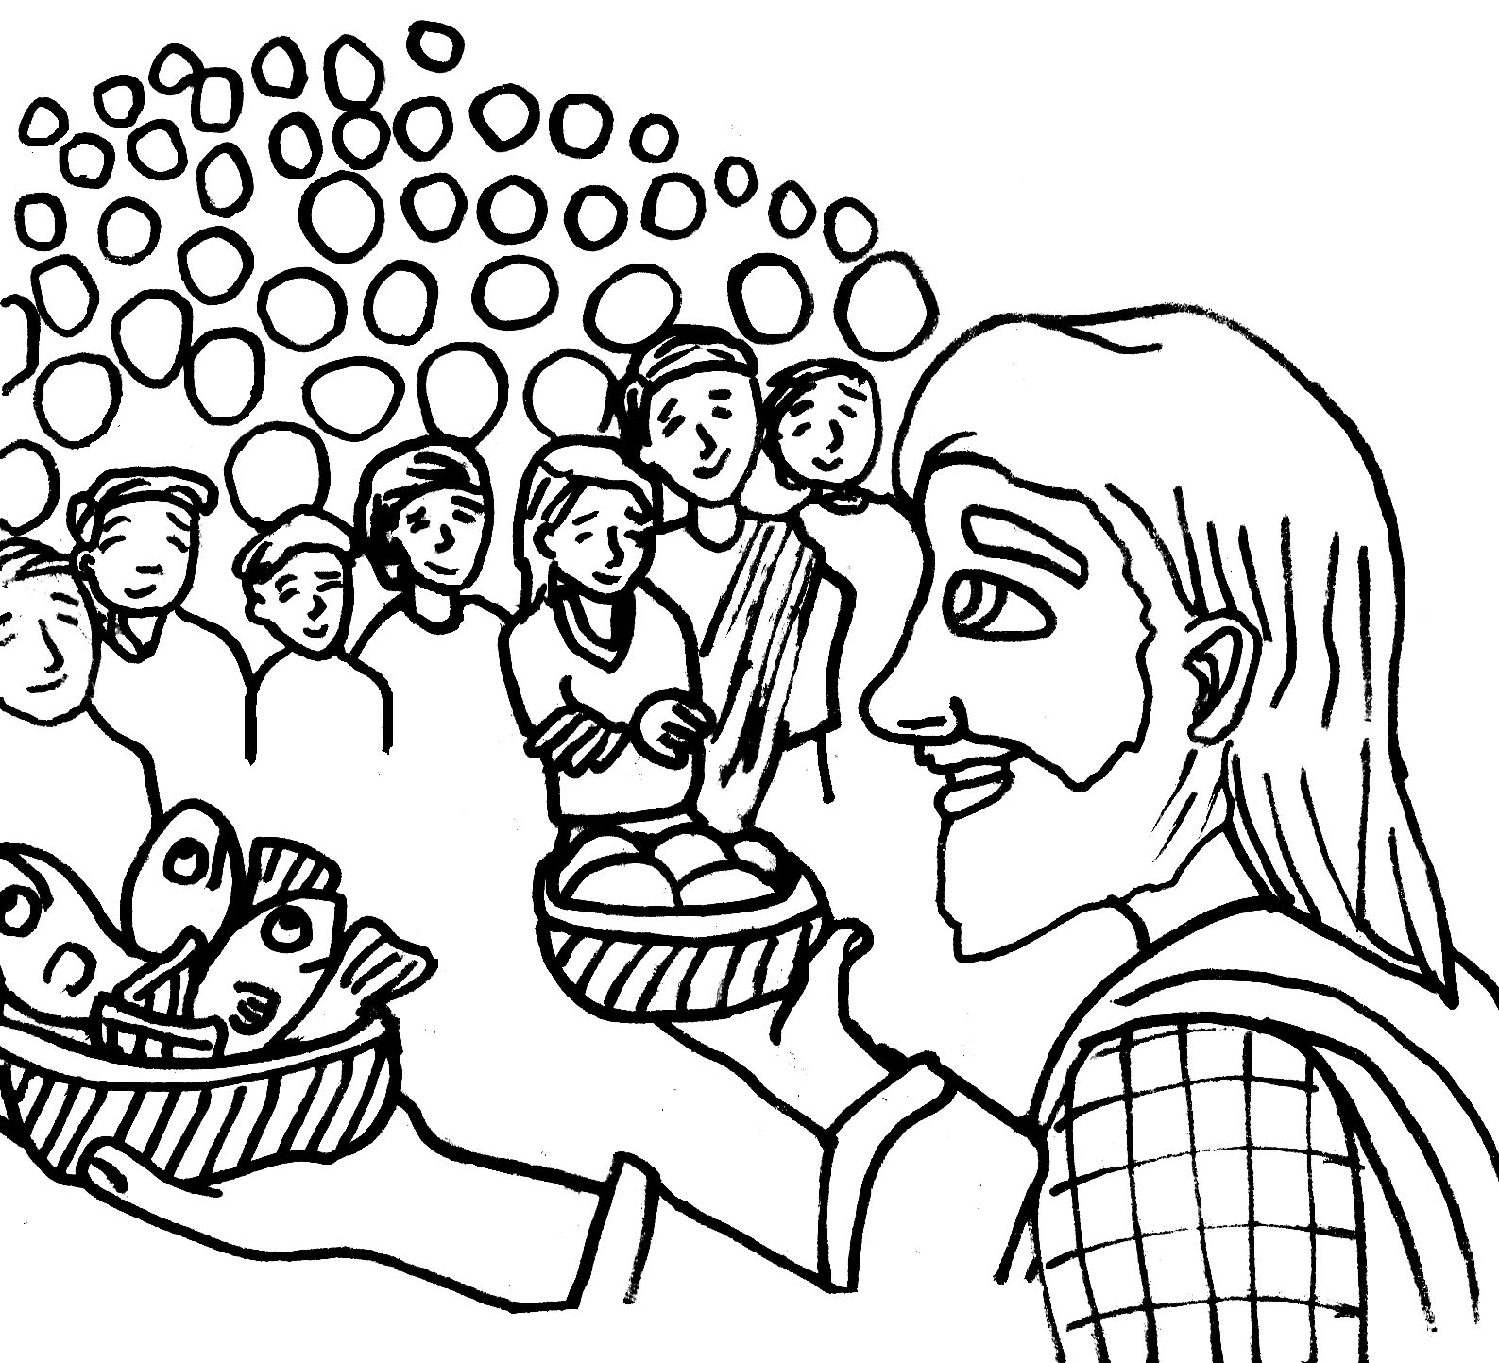 Ldsfiles clipart jesus feeds 5000 coloring page for Feeding the five thousand coloring pages